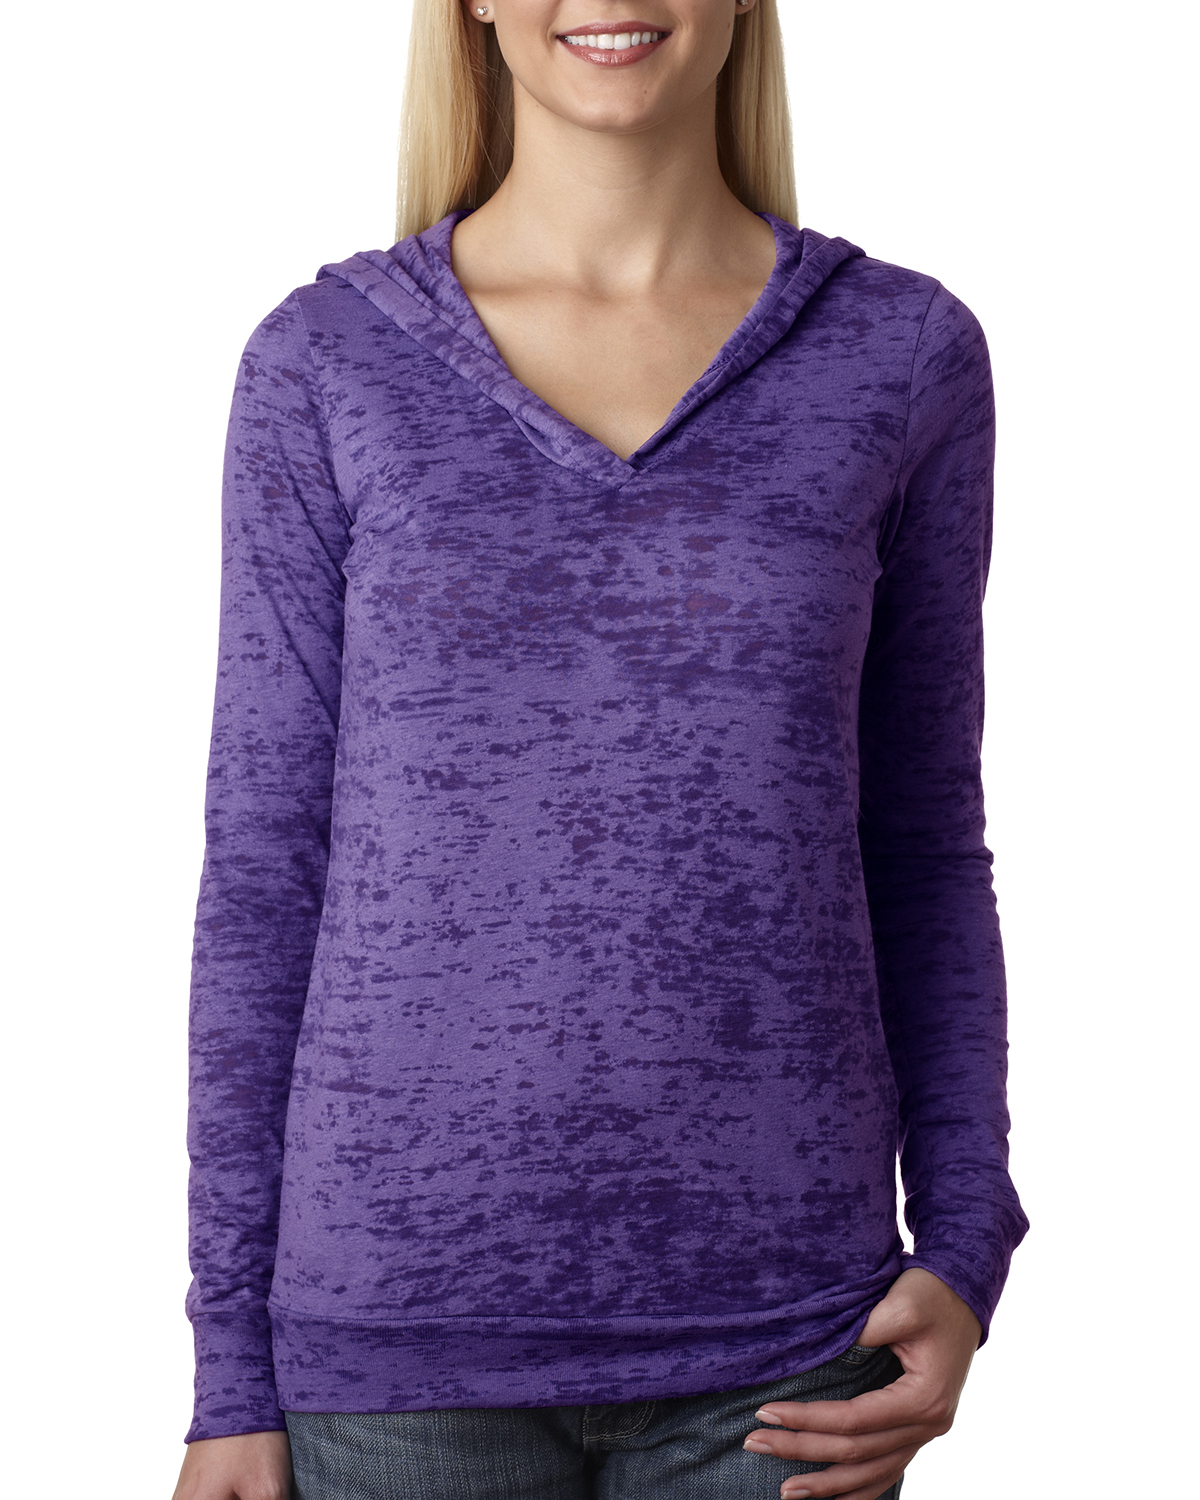 Next Level 6521-The Ladies Poly/Cotton Burnout Hoodie